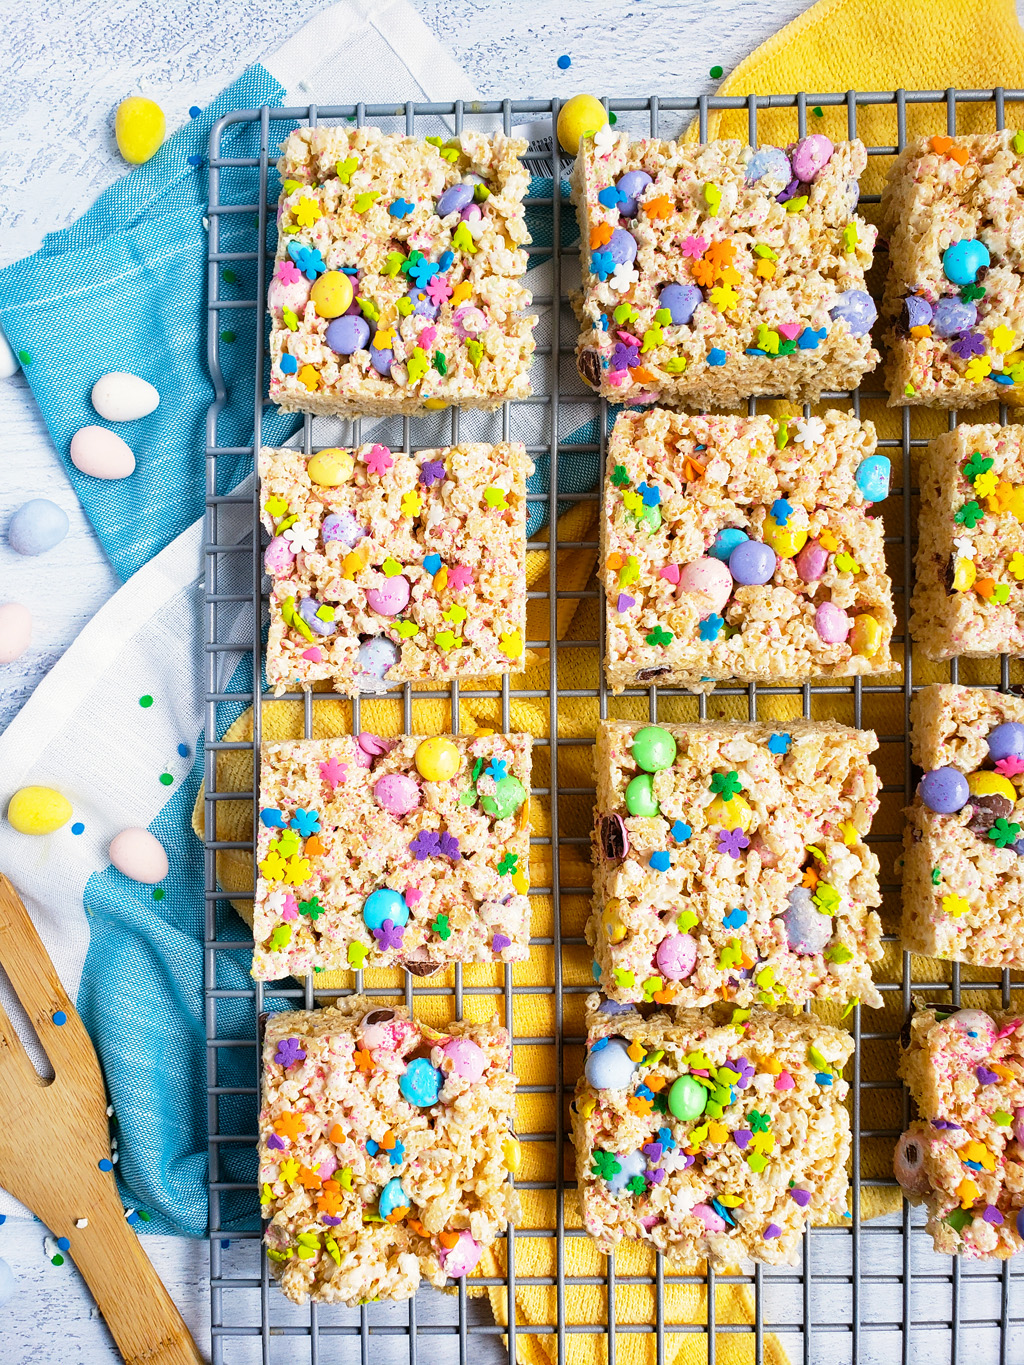 The Best Easter Rice Krispies Treats made with M&Ms, Cadbury eggs, and sprinkles. Cut into squares on a wire rack. The perfect Spring treat